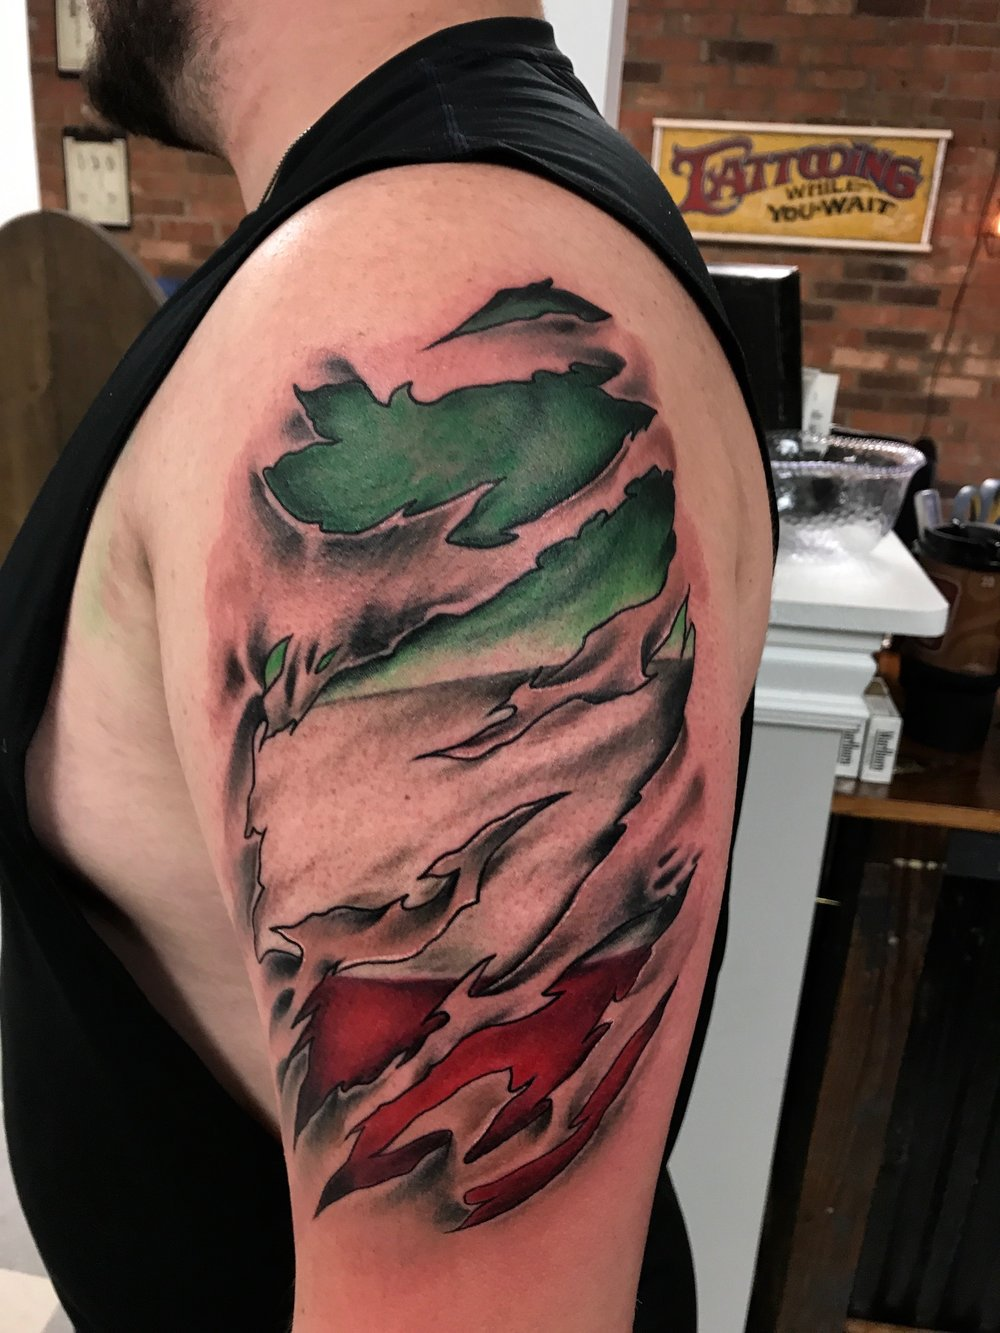 Italian Flag Tattoo.jpg